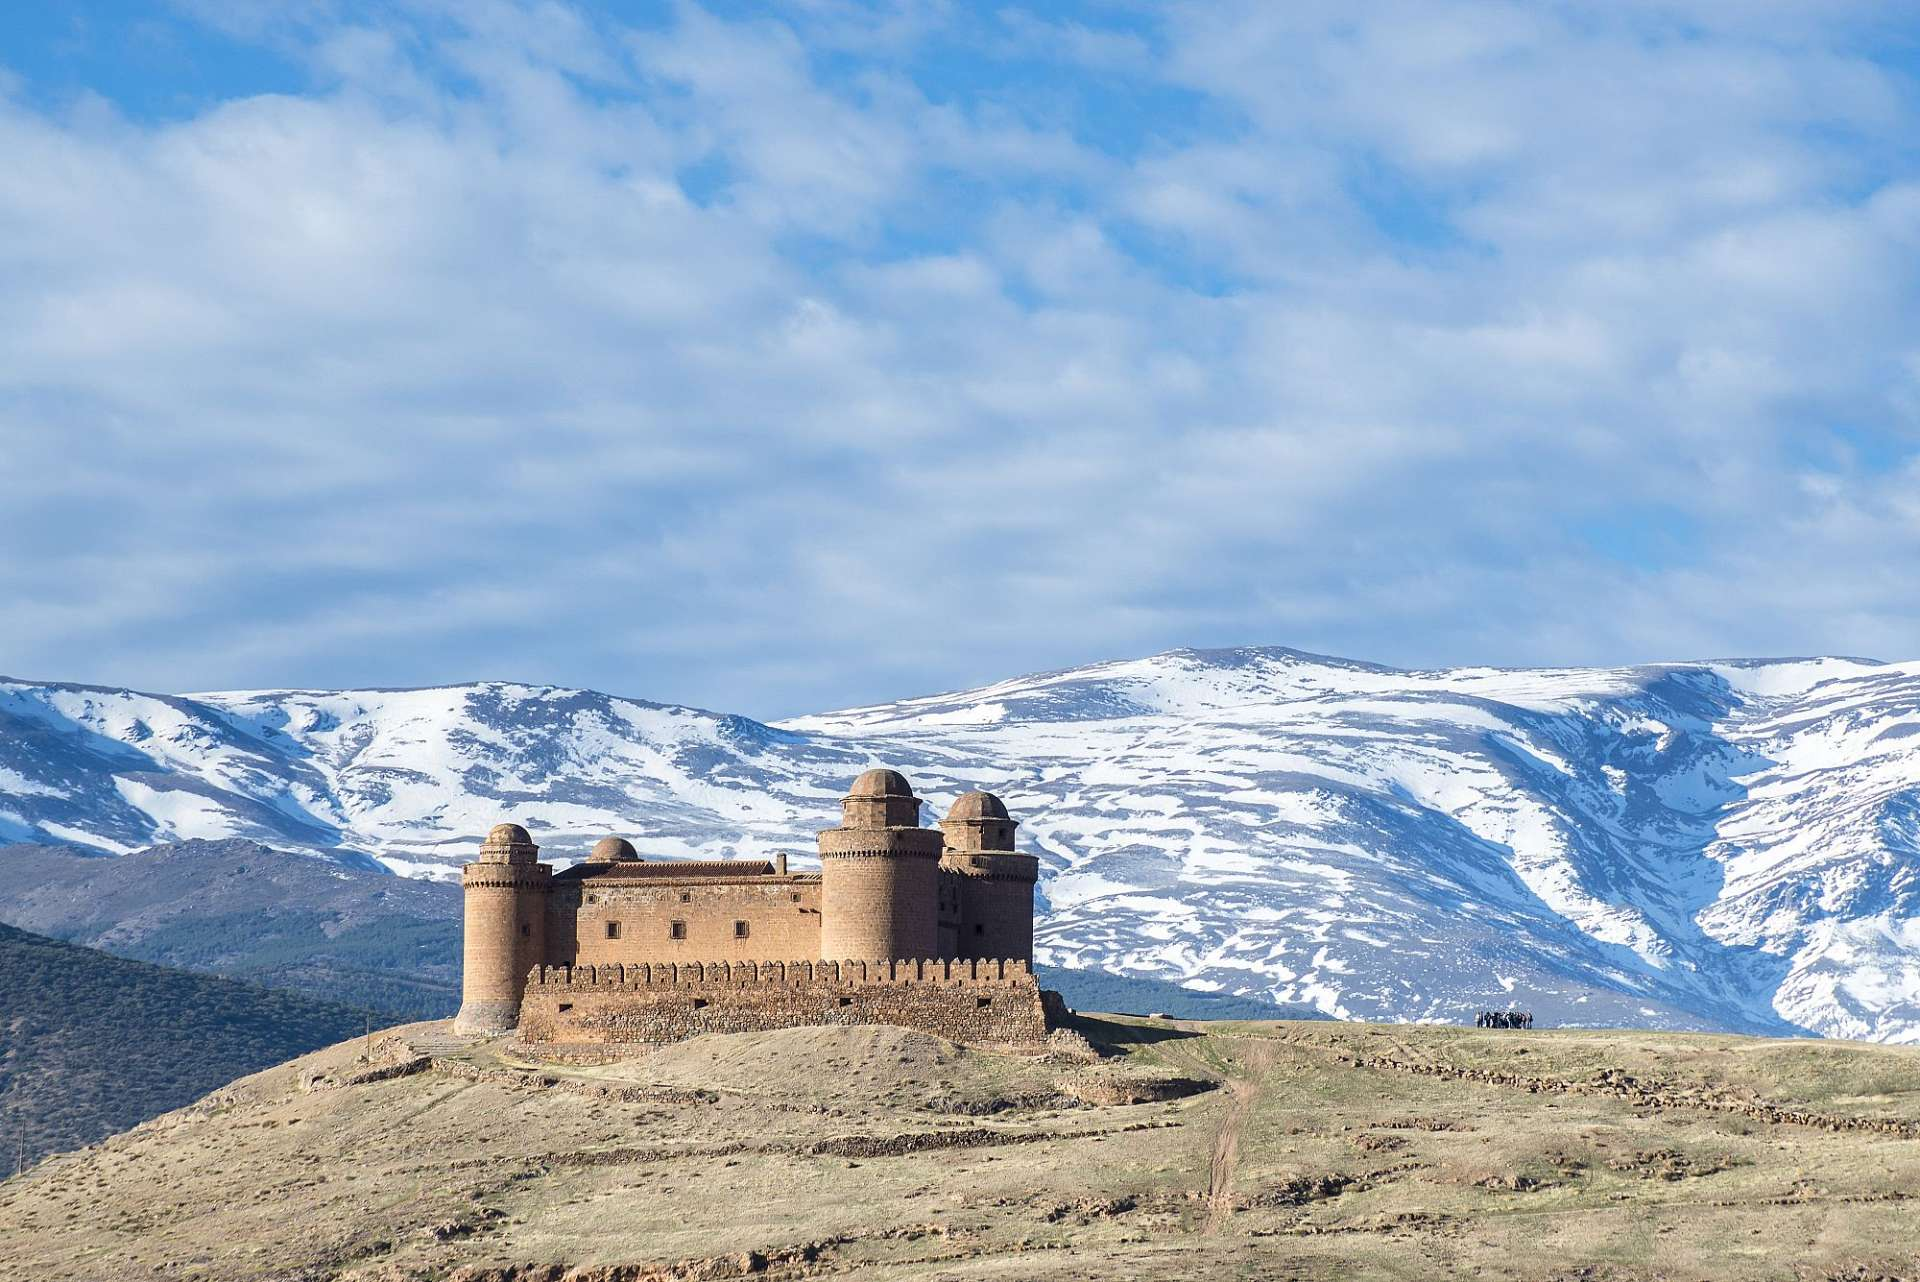 Covered in snow: Sierra Nevada and Castillo de la Calahorra